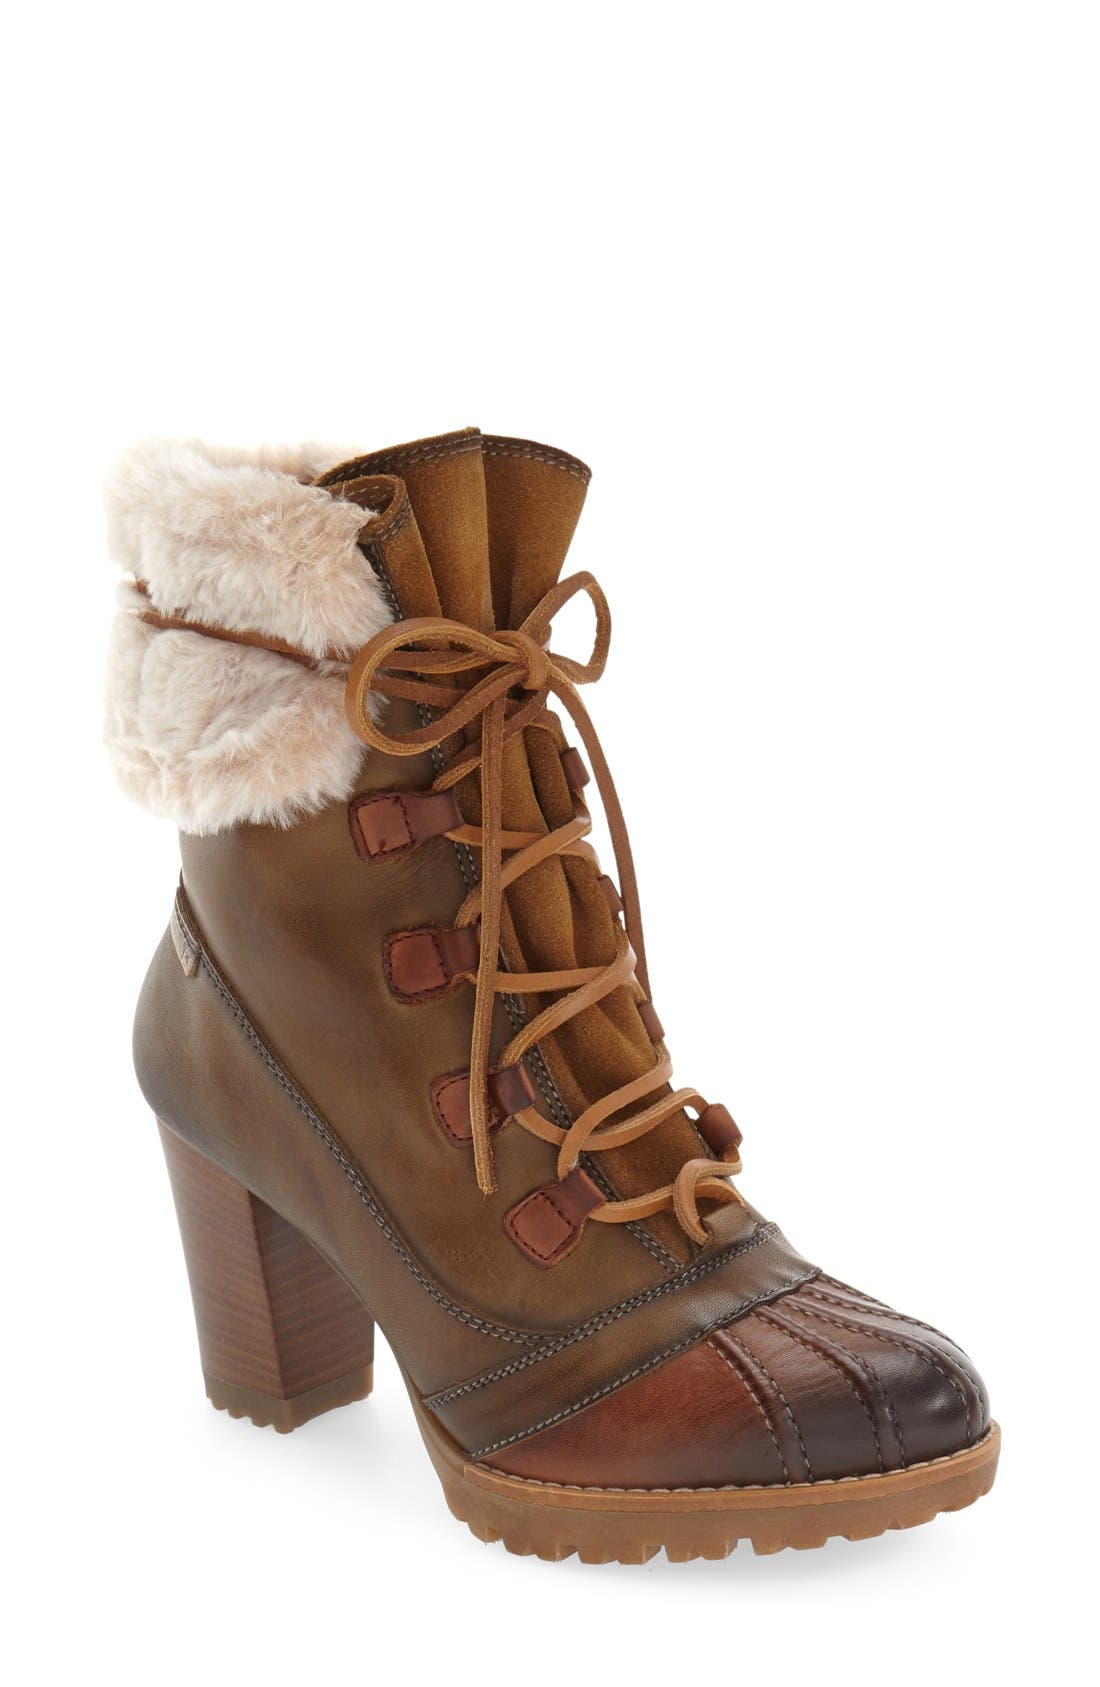 'Connelly' Lace-Up Boot,                             Main thumbnail 1, color,                             205